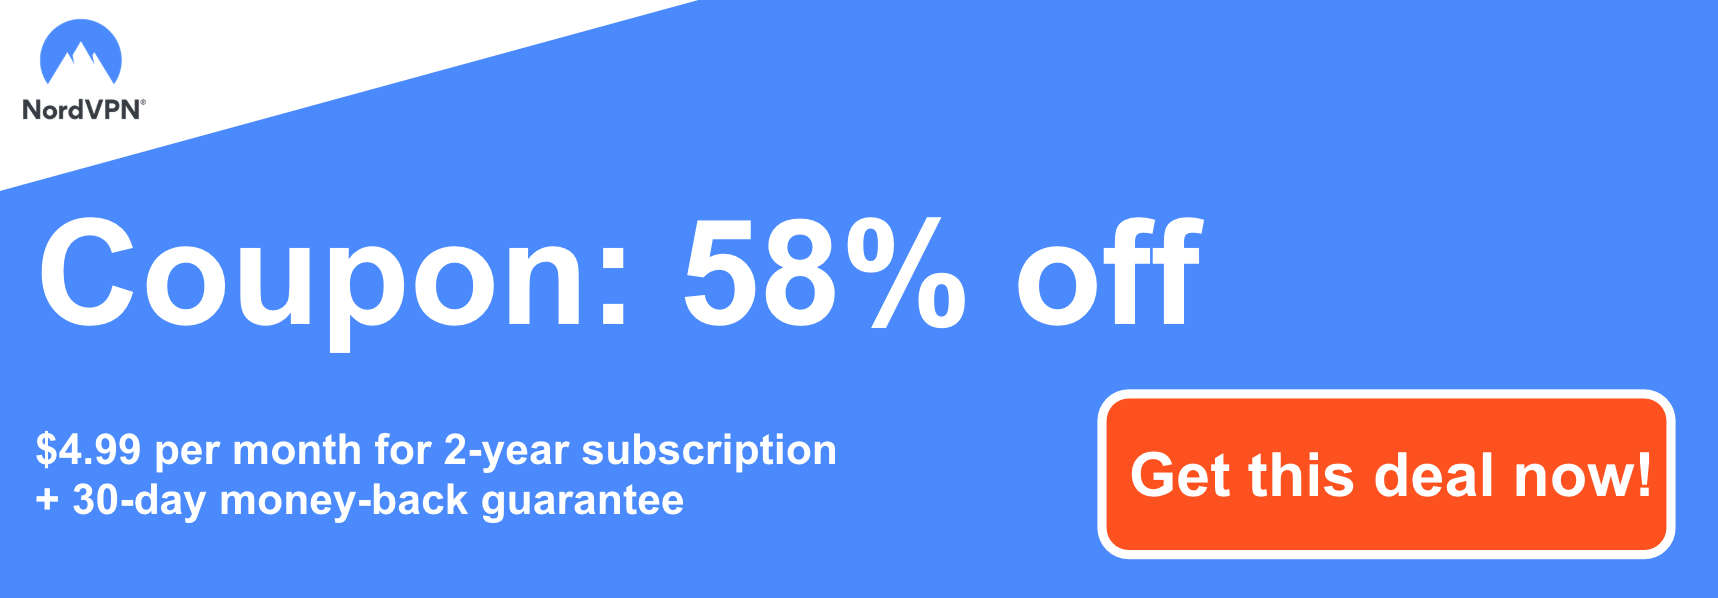 Graphic of a working NordVPN coupon offering a 58% discount which is $4.99 per month for a 2-year subscription and a 30 day money-back guarantee